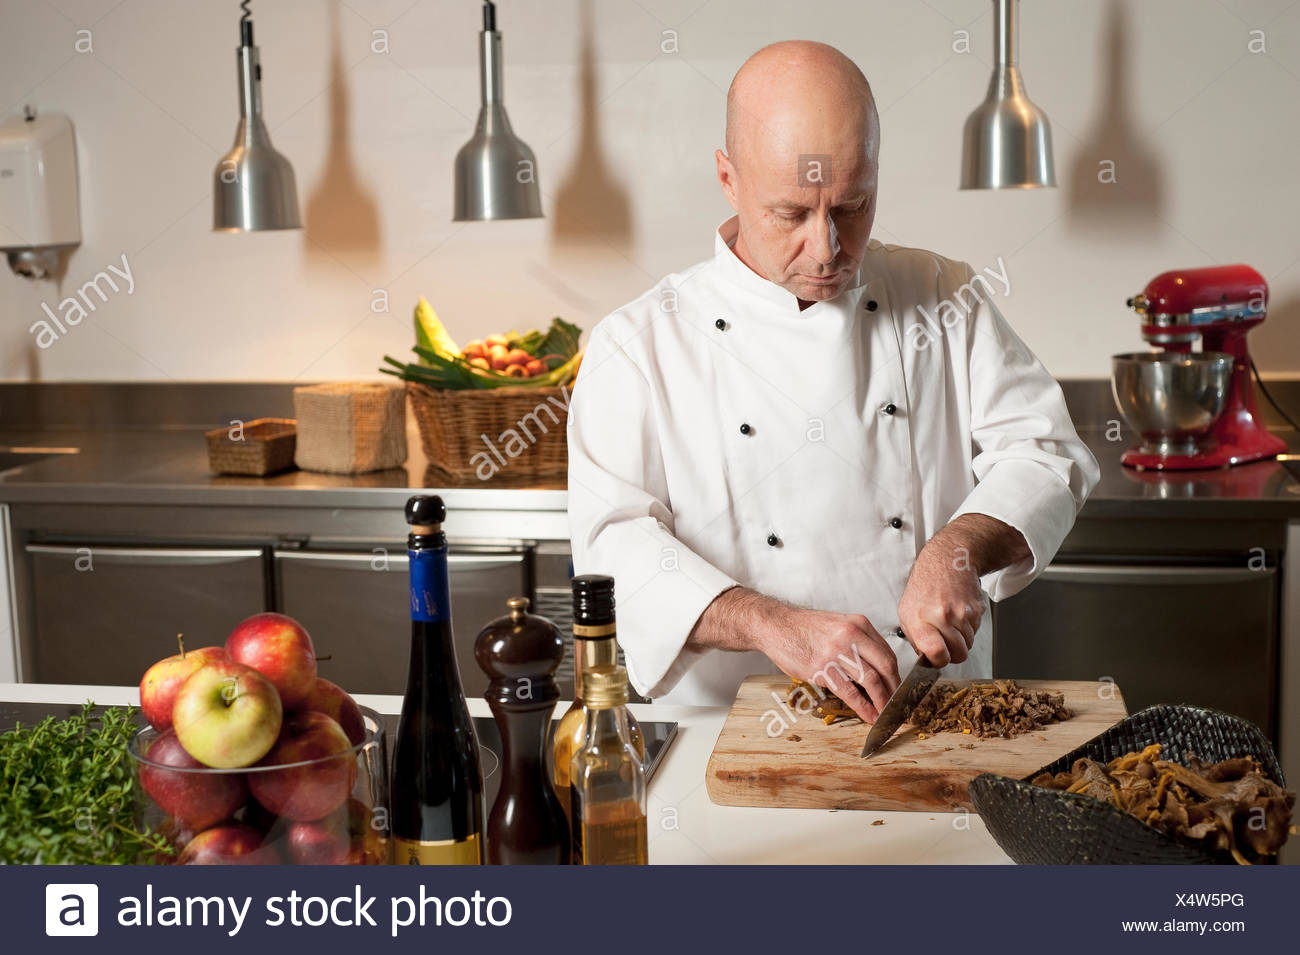 Chef chopping food in kitchen Photo Stock